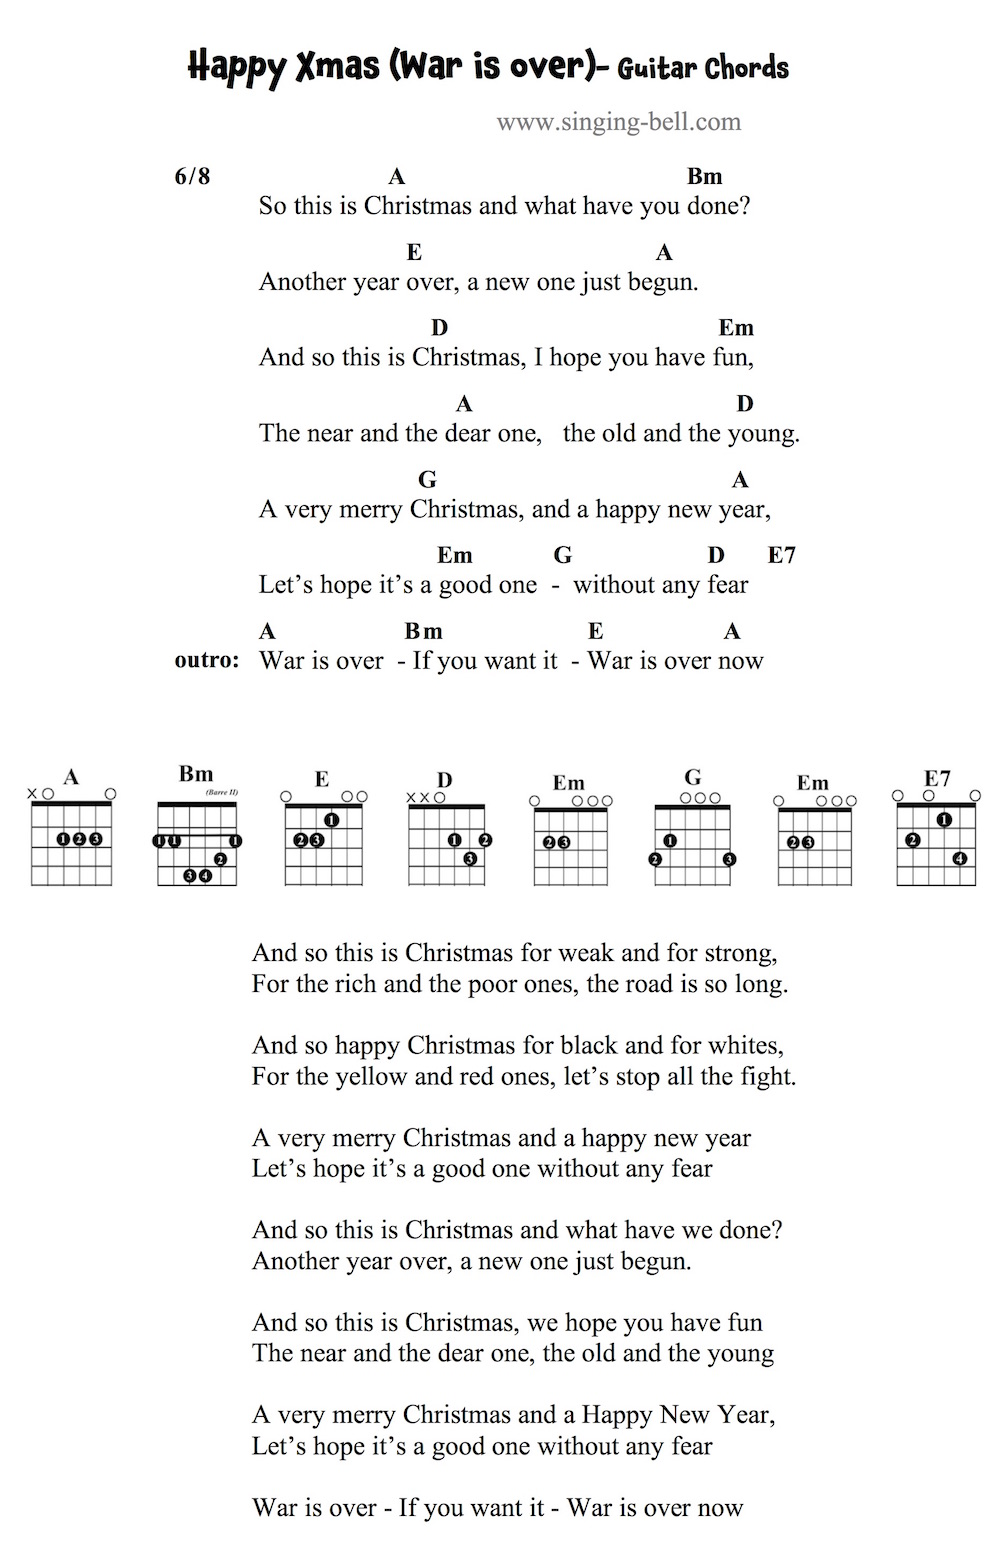 Happy Xmas (War is Over) - Guitar Chords and Tabs